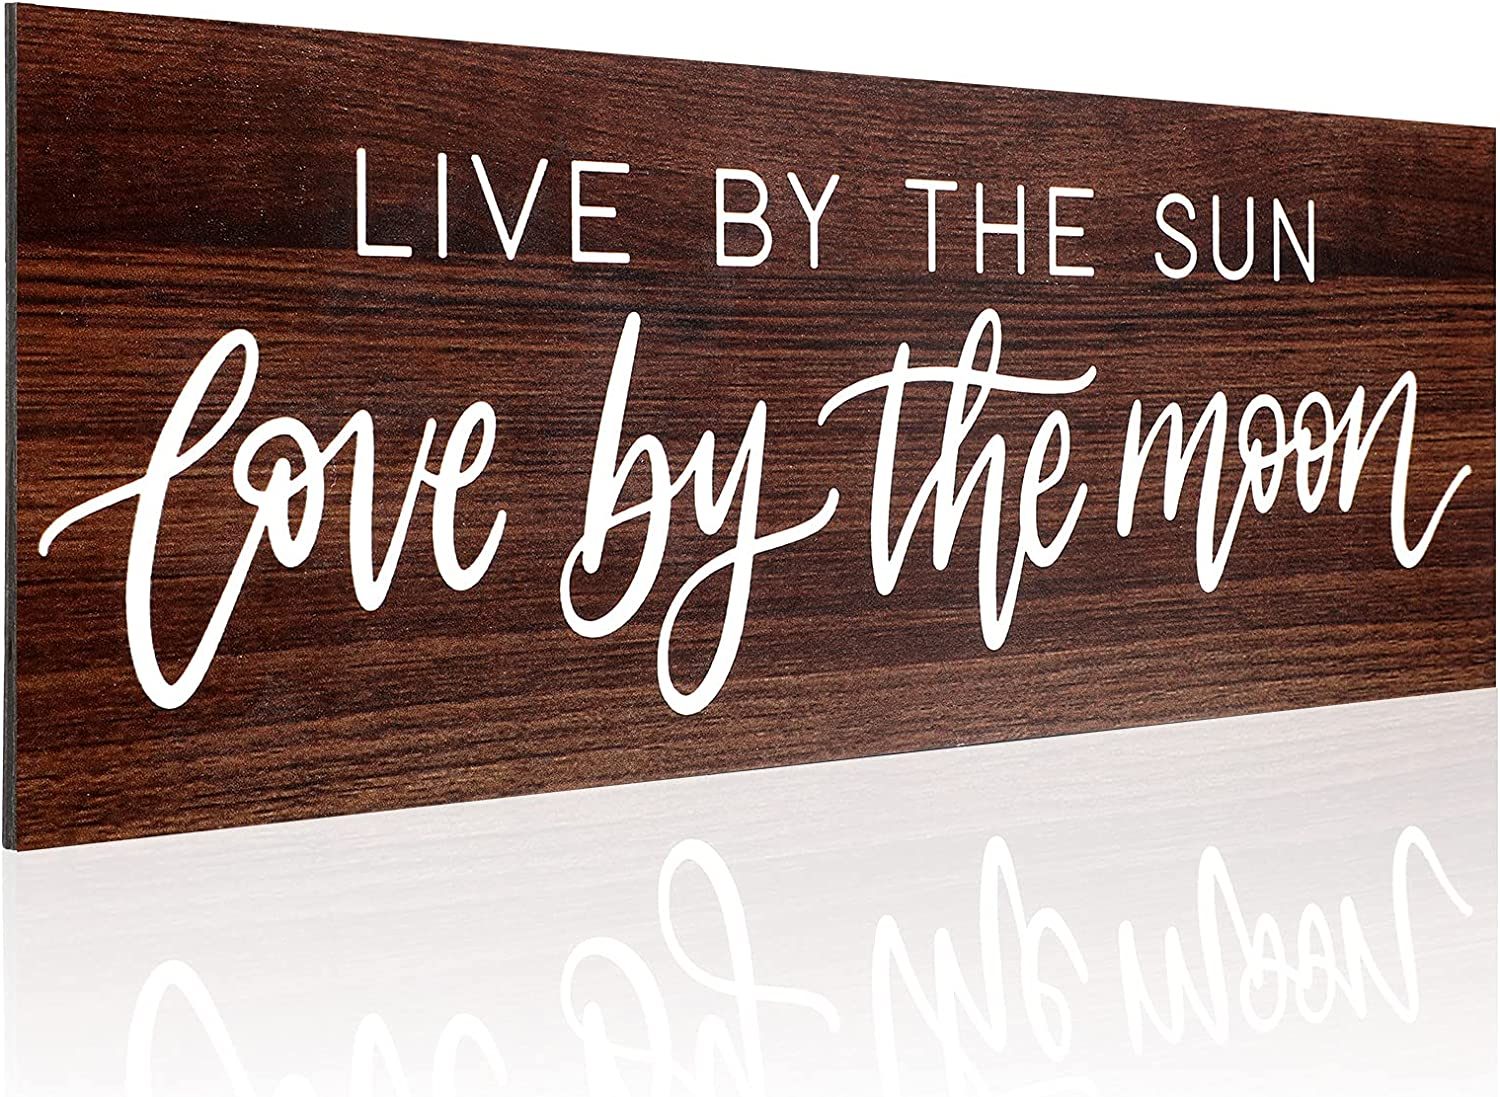 Jetec Live by The Sun, Love by The Moon Wood Sign Personalized Wall Hanging Art Rustic Wood Farmhouse Wall Decor Vintage Hanging Wooden Decoration for Living Room, Nursery, Bedroom, Porch, Home Party